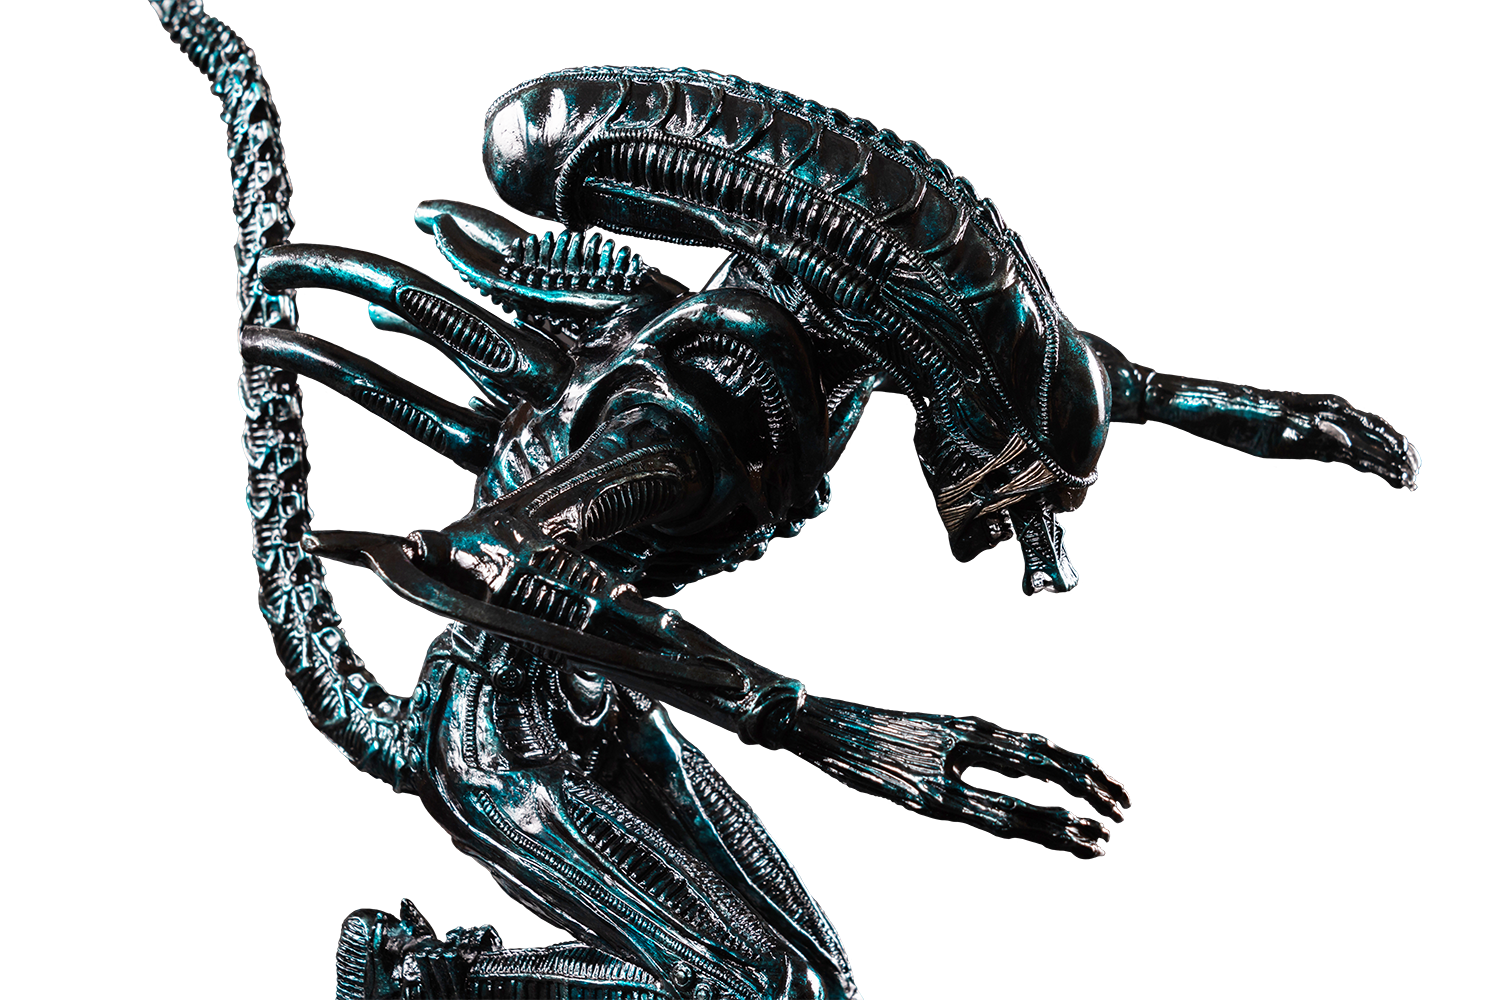 IKO1124-Alien-in-Water-Statue-New-Paint-8-147.png